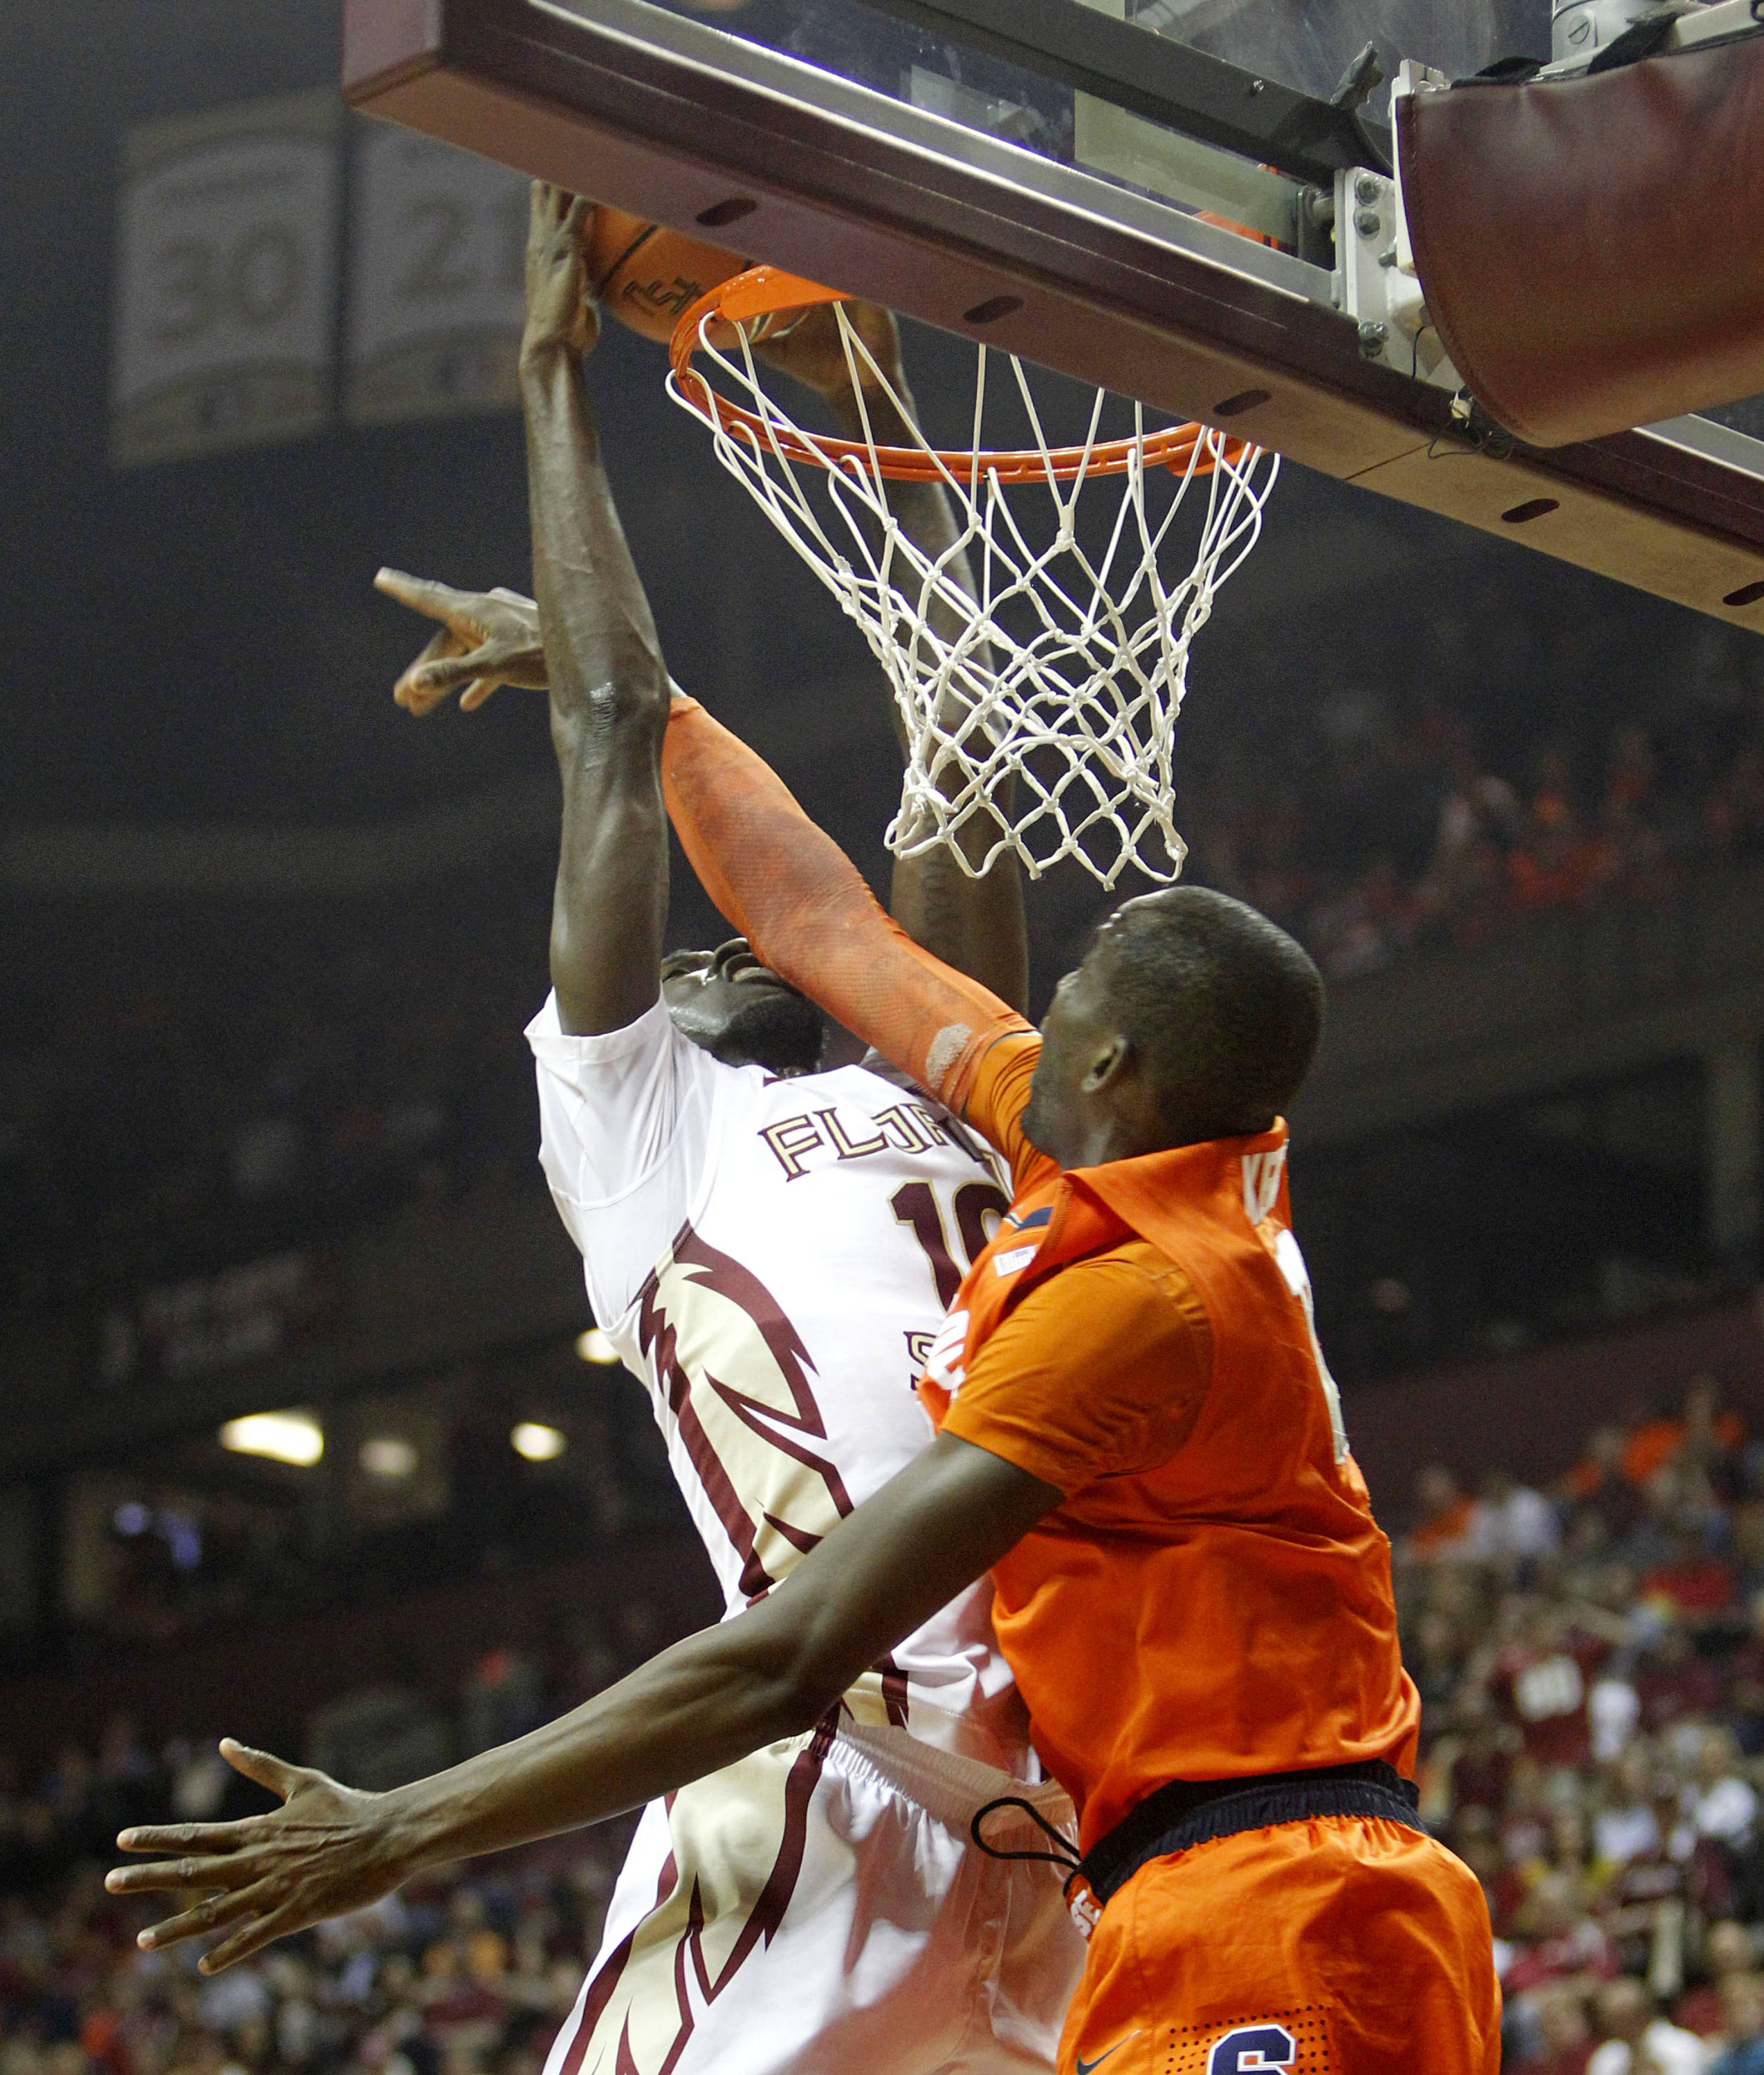 Mar 9, 2014; Tallahassee, FL, USA;  Florida State Seminoles forward Okaro White (10) dunks over Syracuse Orange center Baye-Moussa Keita (12) during the first half at Donald L. Tucker Center. Mandatory Credit: Matt Stamey-USA TODAY Sports